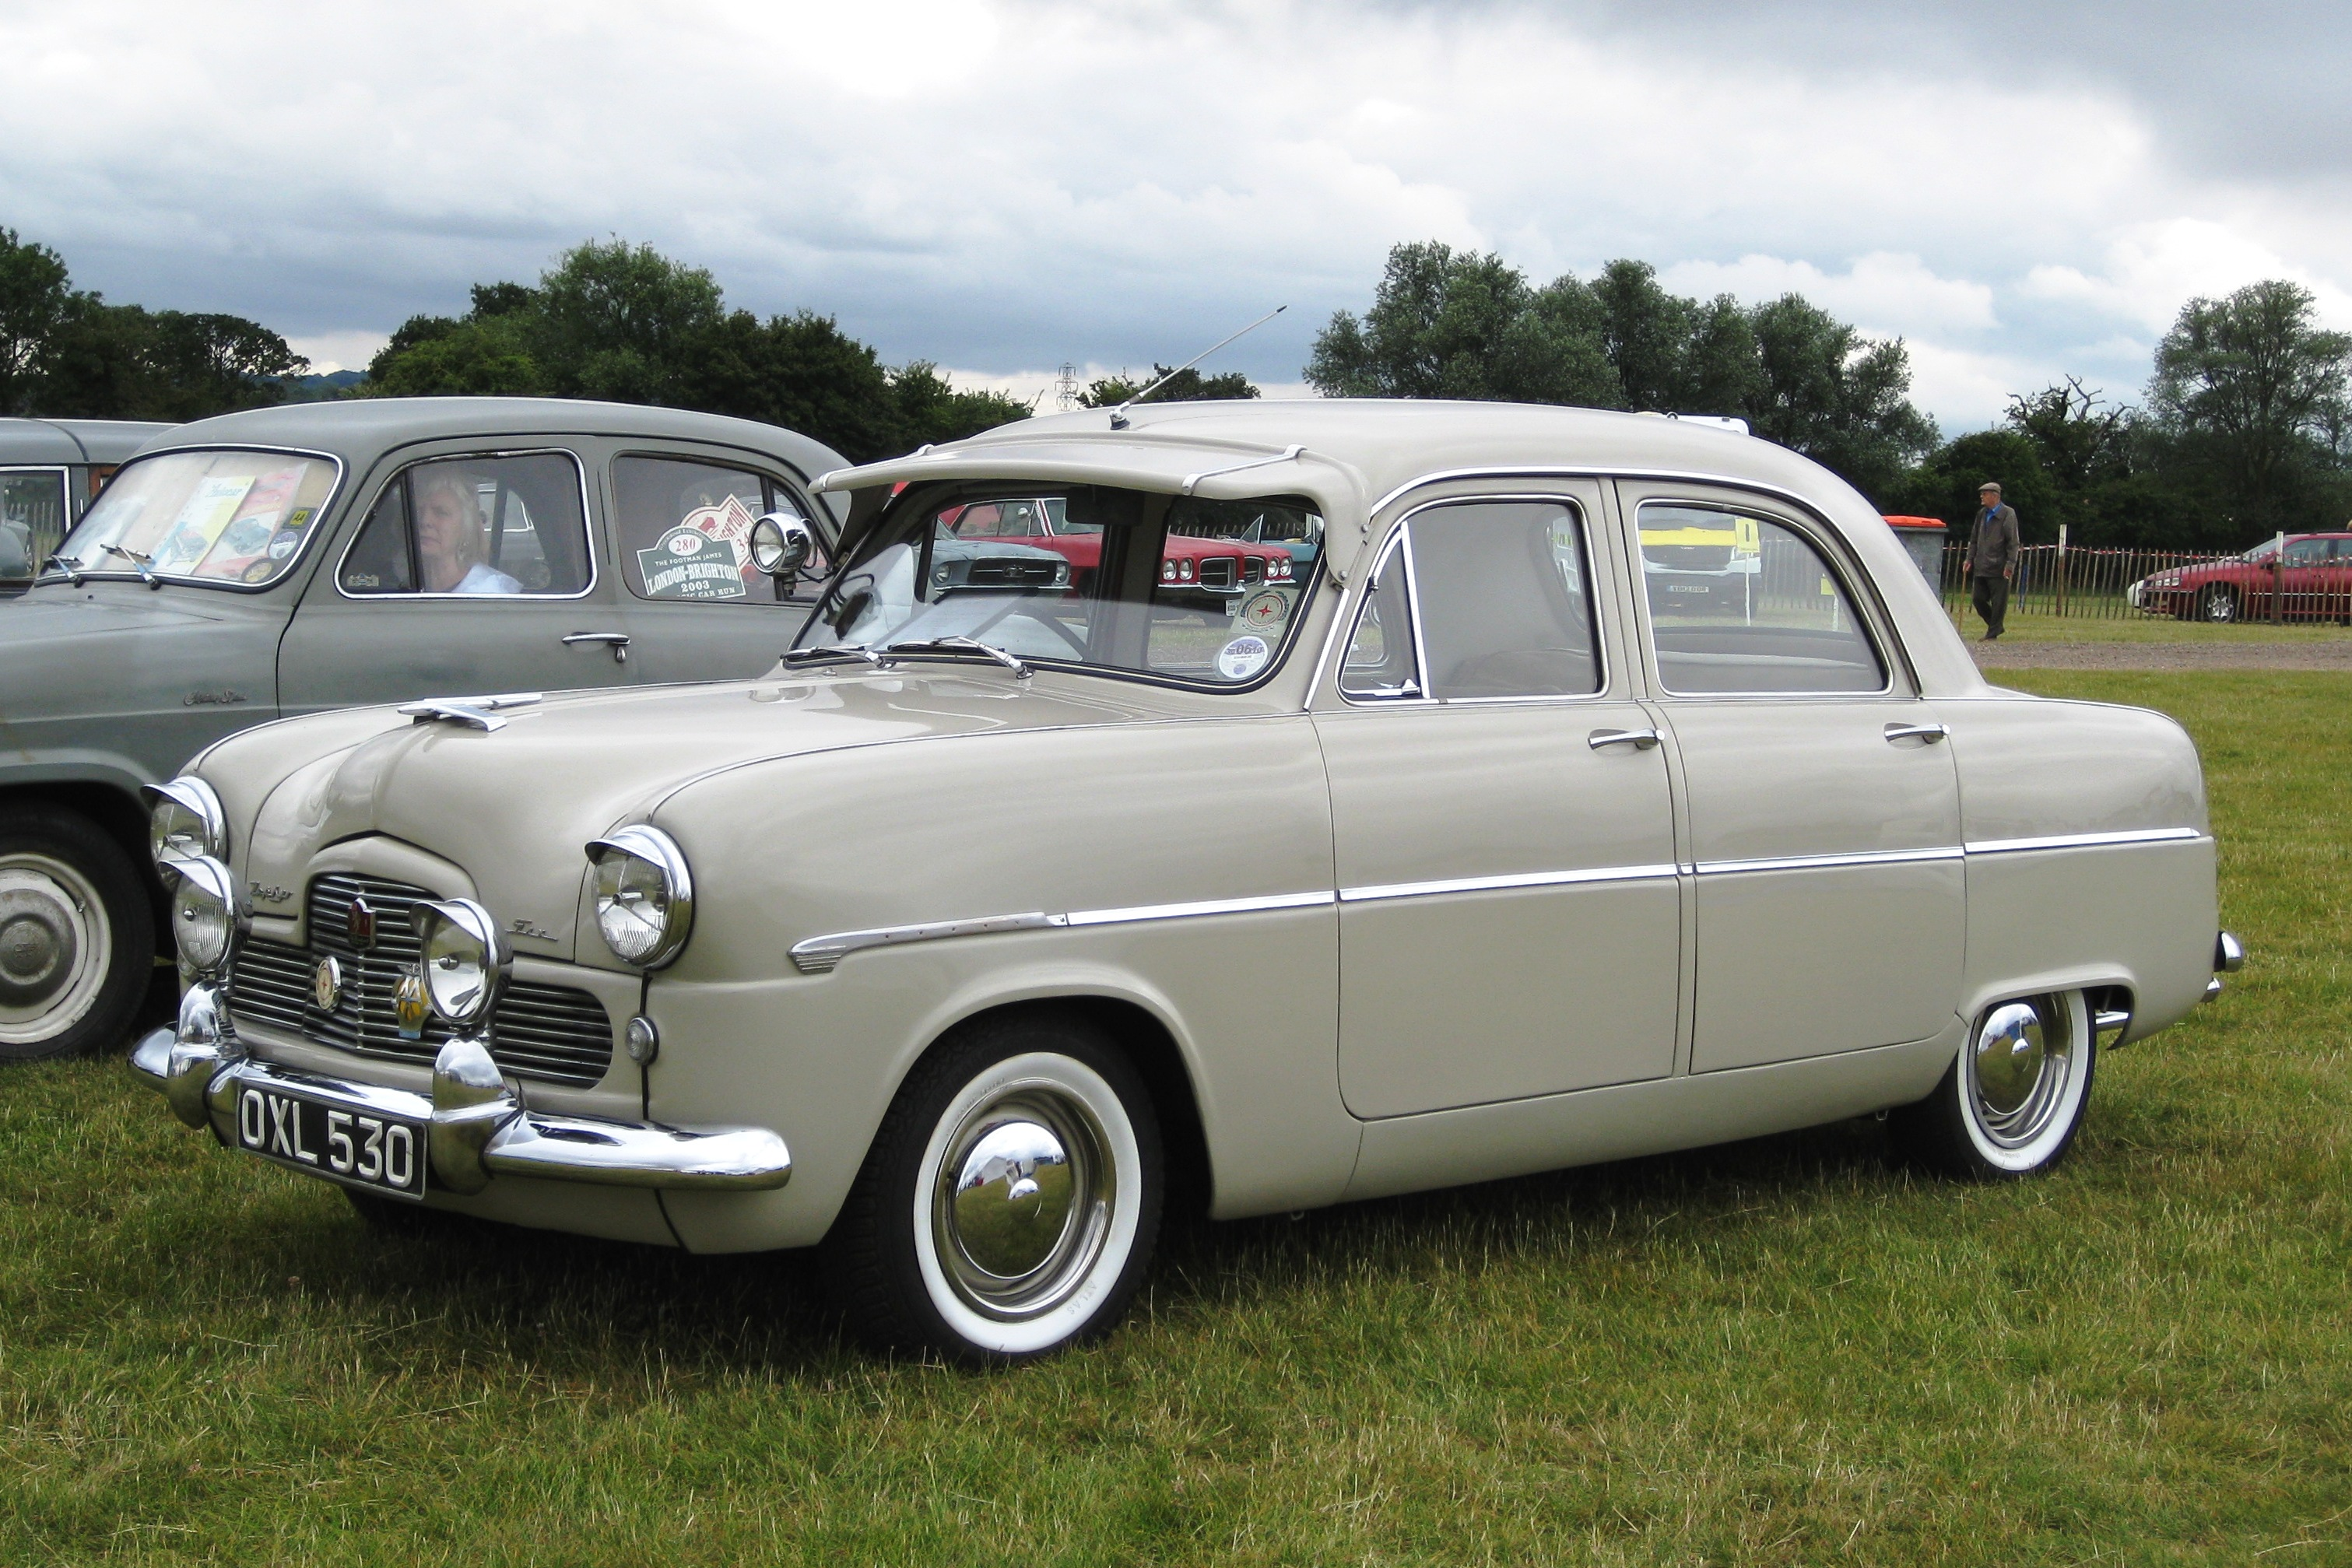 Le Mans Classic 2016 Video also Restyling 1940 Ford Coupe in addition 1996 Ford F 250 furthermore File Fahrzeuge Brussel 1958 also 1950 FORD CUSTOM WOODY WAGON 161869. on 1950 ford cars